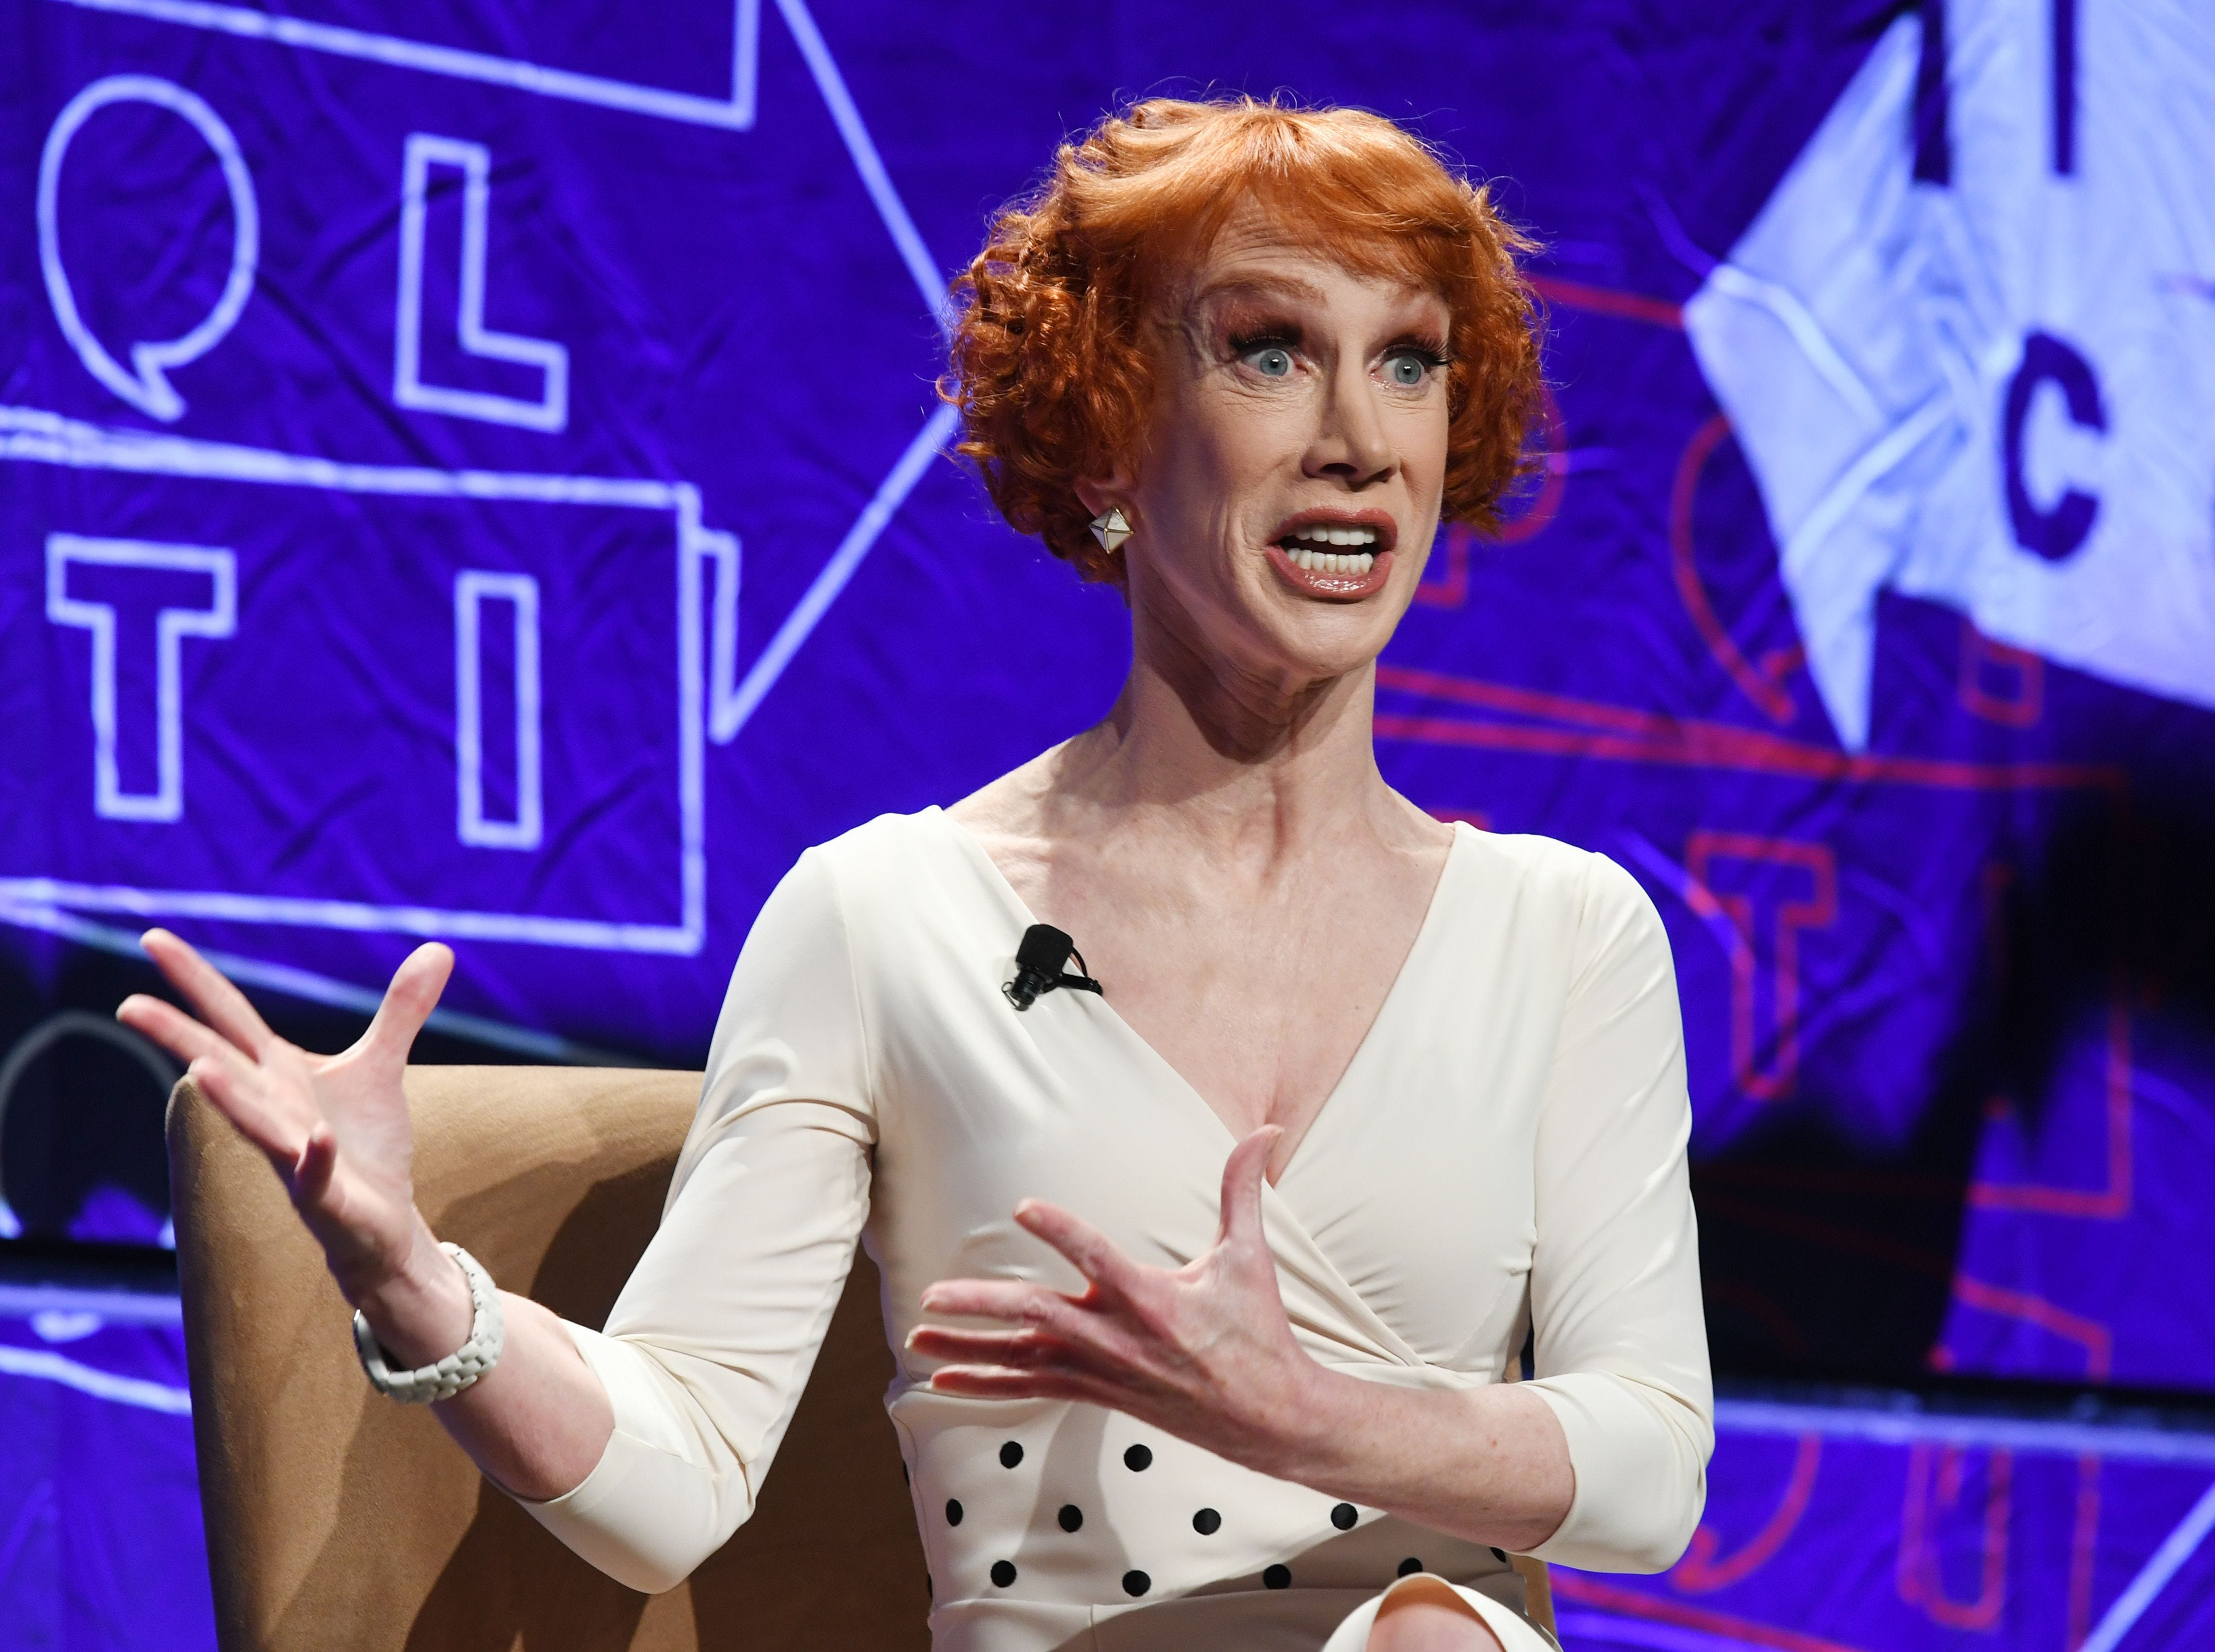 Comedian Kathy Griffin speaks at the 'How to Beat Trump' panel at the 2018 Politicon in Los Angeles, California on October 20, 2018. - The two day event covers all things political with dozens of high profile political figures. (Photo by Mark RALSTON / AFP)MARK RALSTON/AFP/Getty Images ORIG FILE ID: AFP_1A67J9